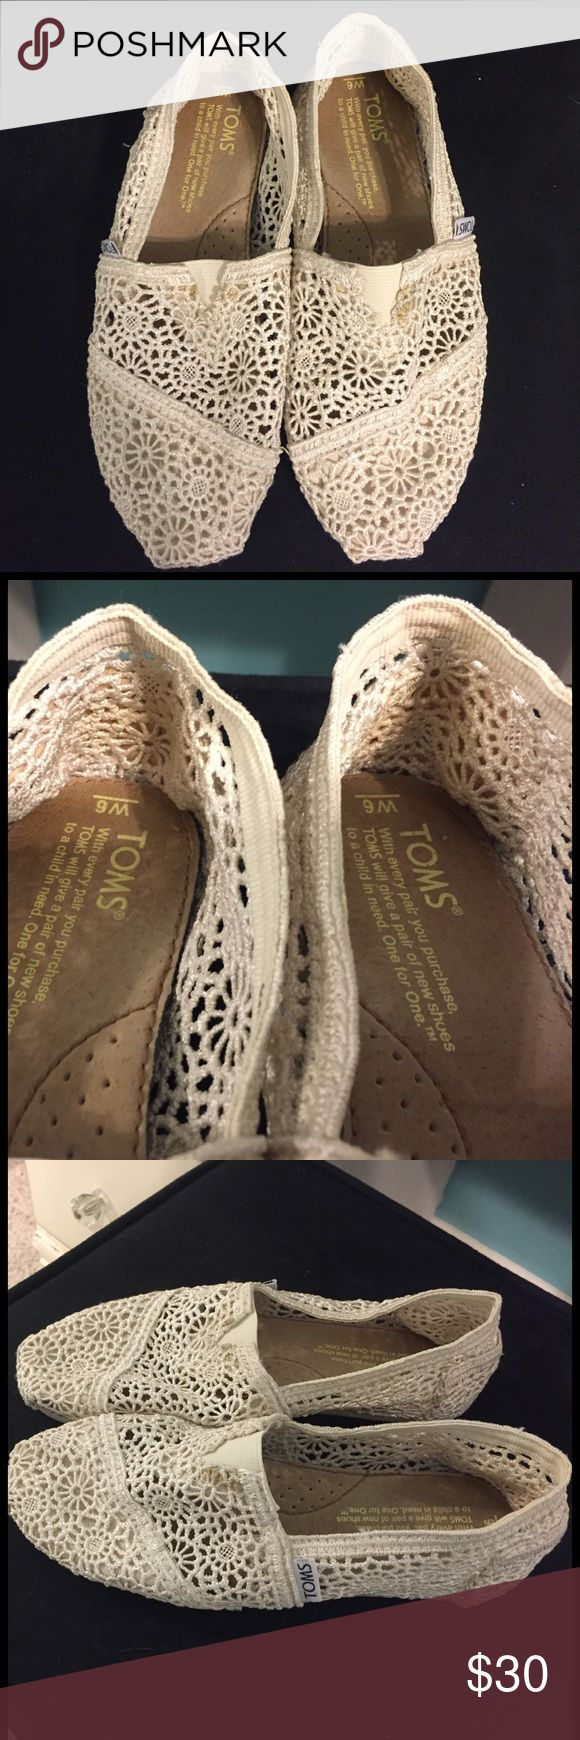 TOMS crochet shoes TOMS crochet off-white colored shoes. They are a size 6 and super comfortable. Still in good condition! TOMS Shoes Flats & Loafers